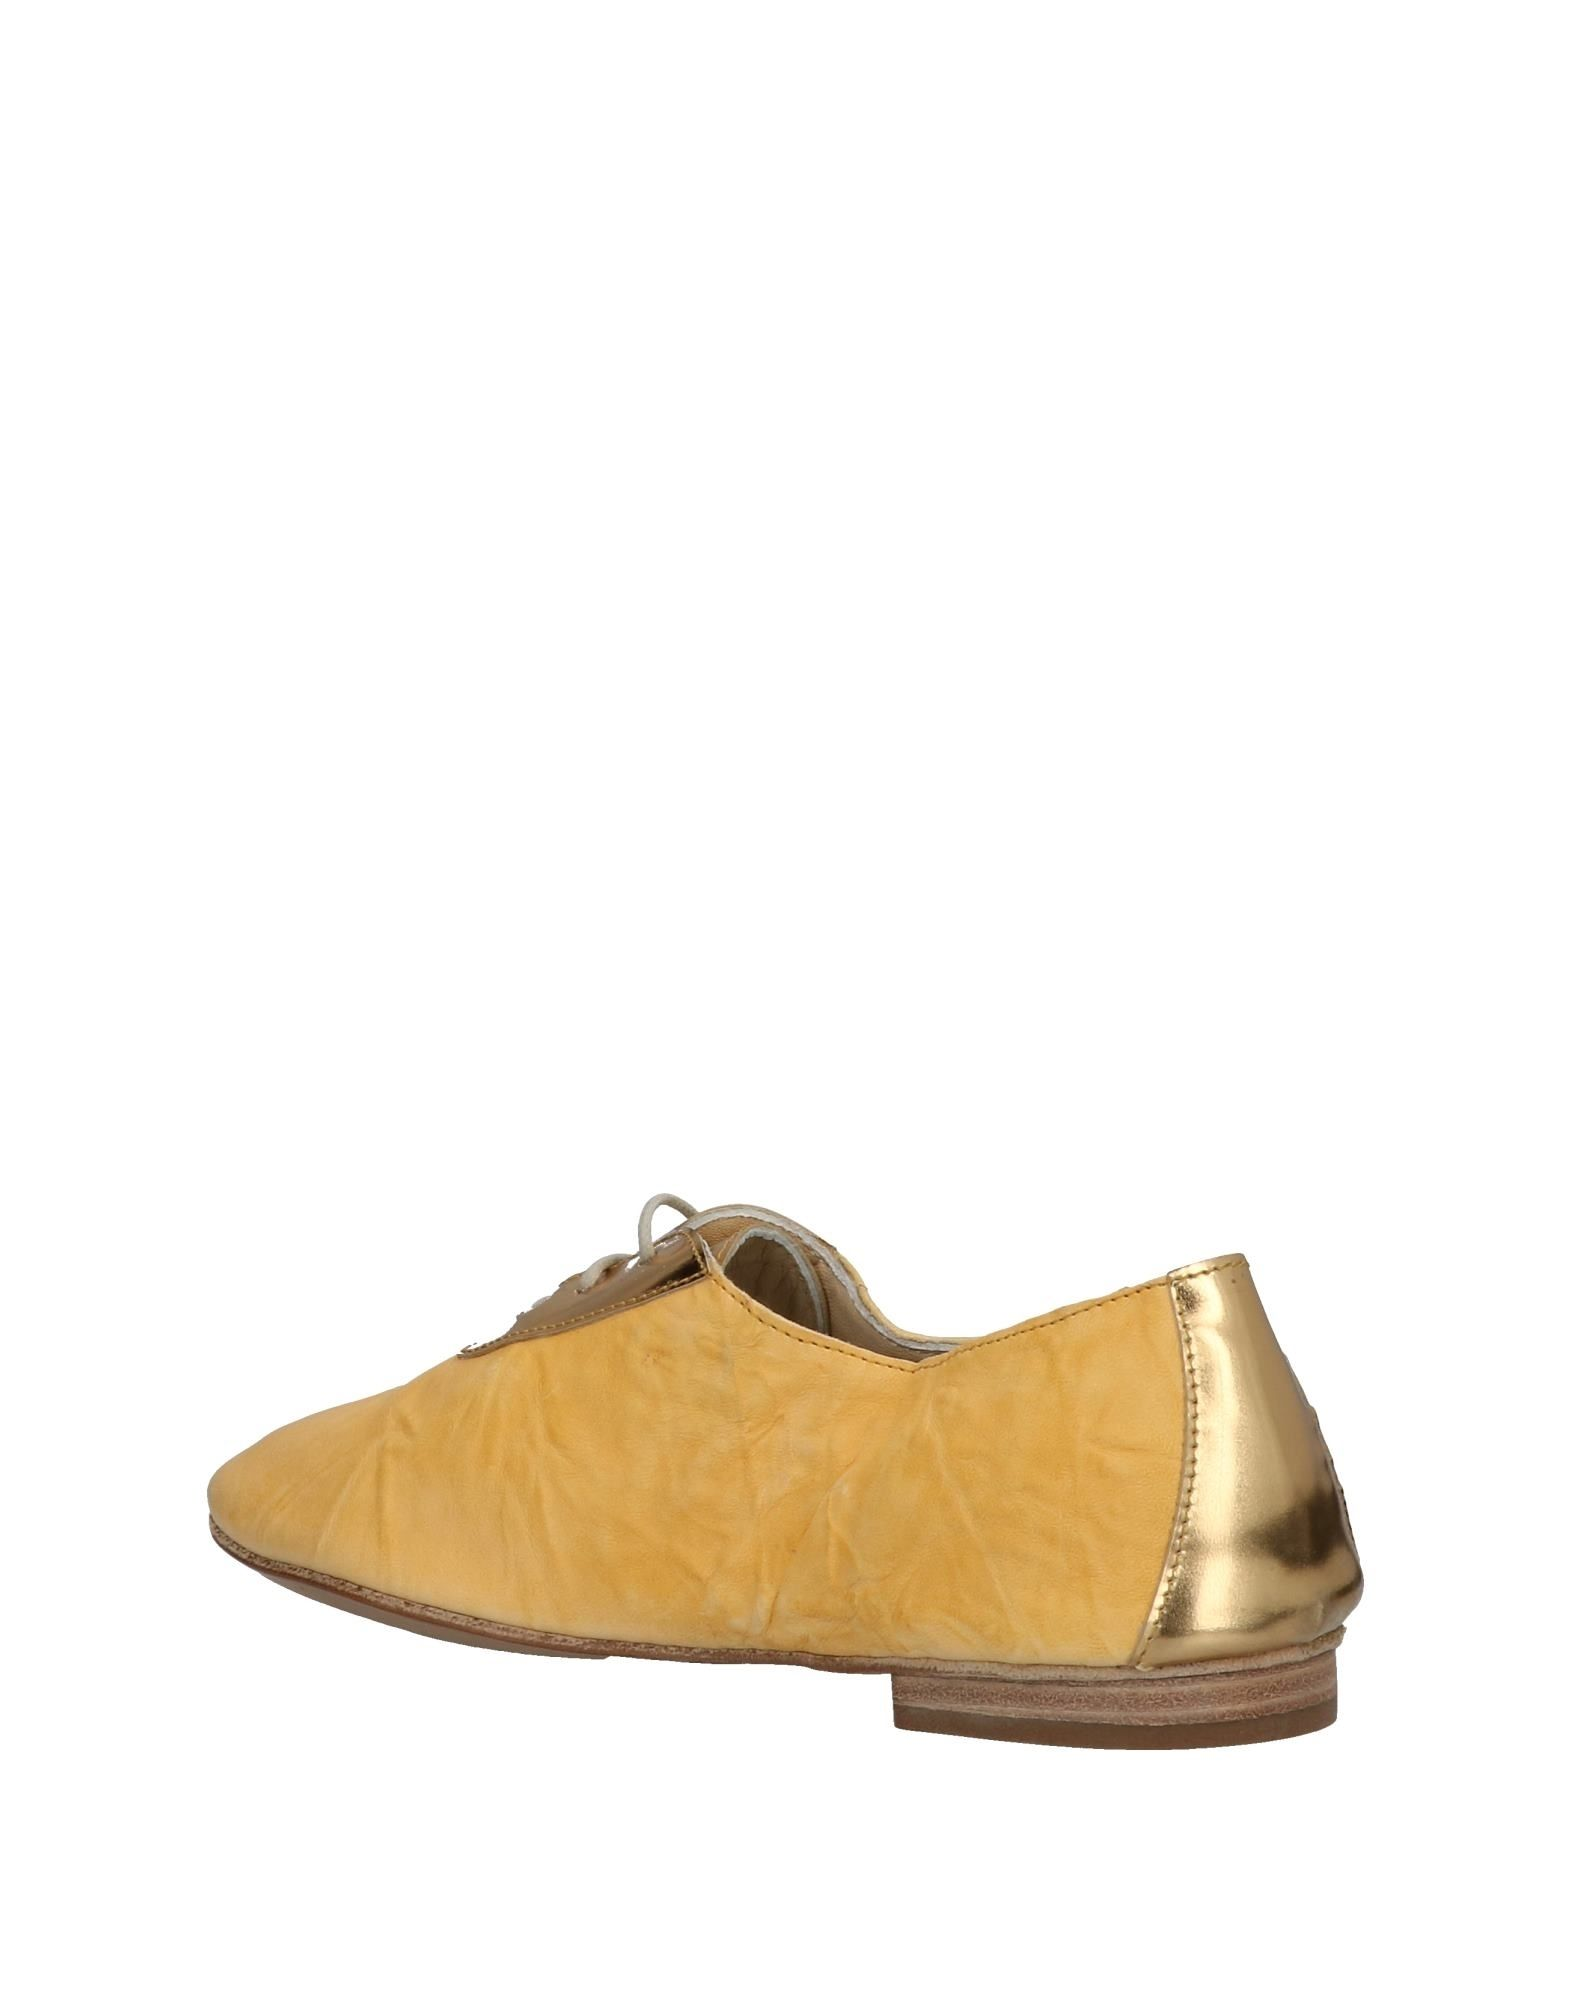 CHAUSSURES - BallerinesGia Couture BUelnKYvqf